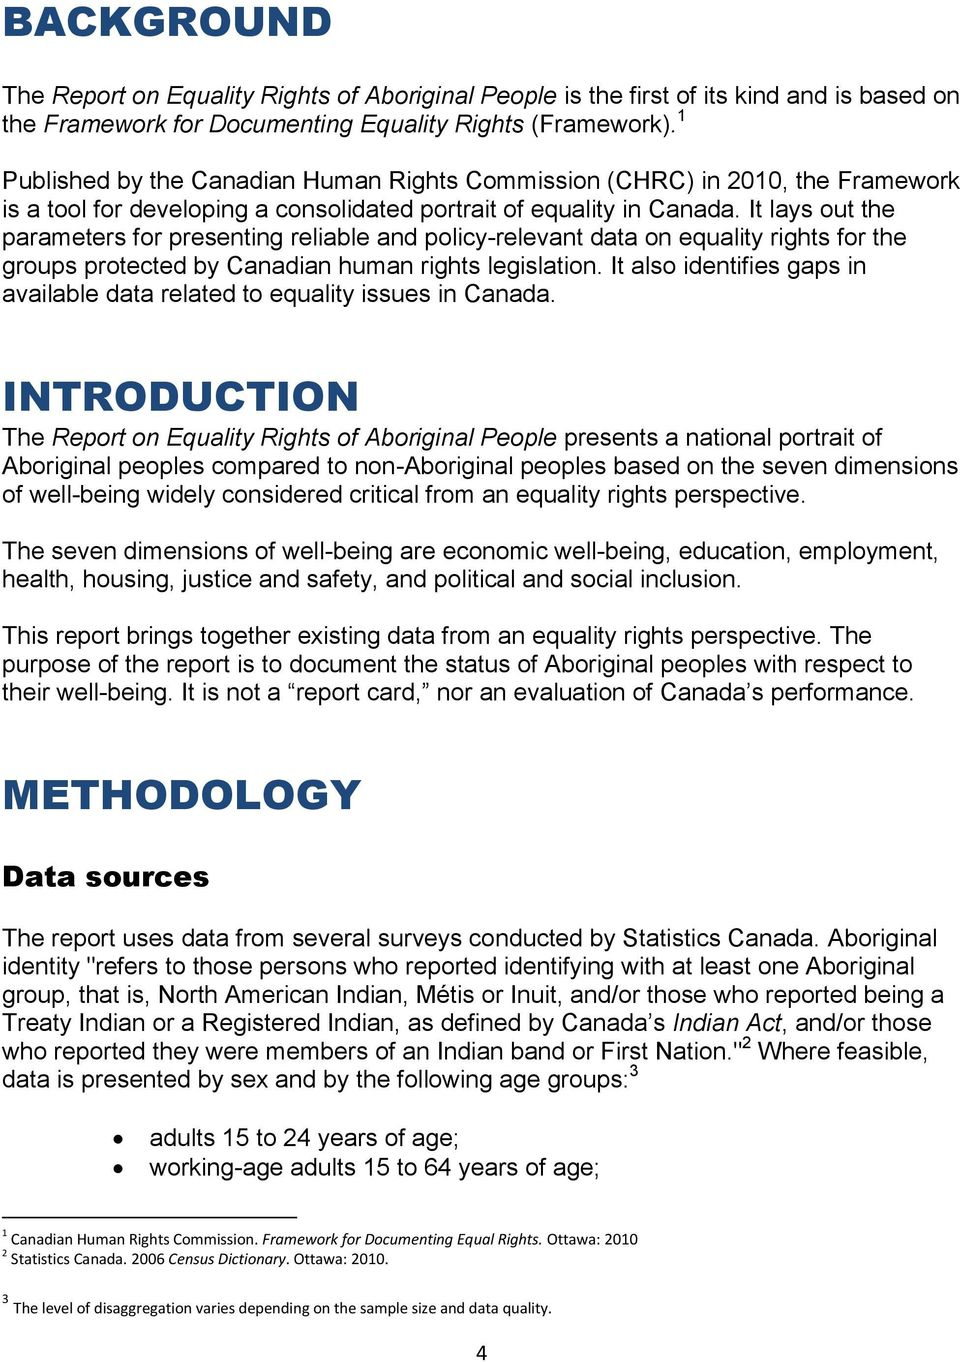 It lays out the parameters for presenting reliable and policy-relevant data on equality rights for the groups protected by Canadian human rights legislation.